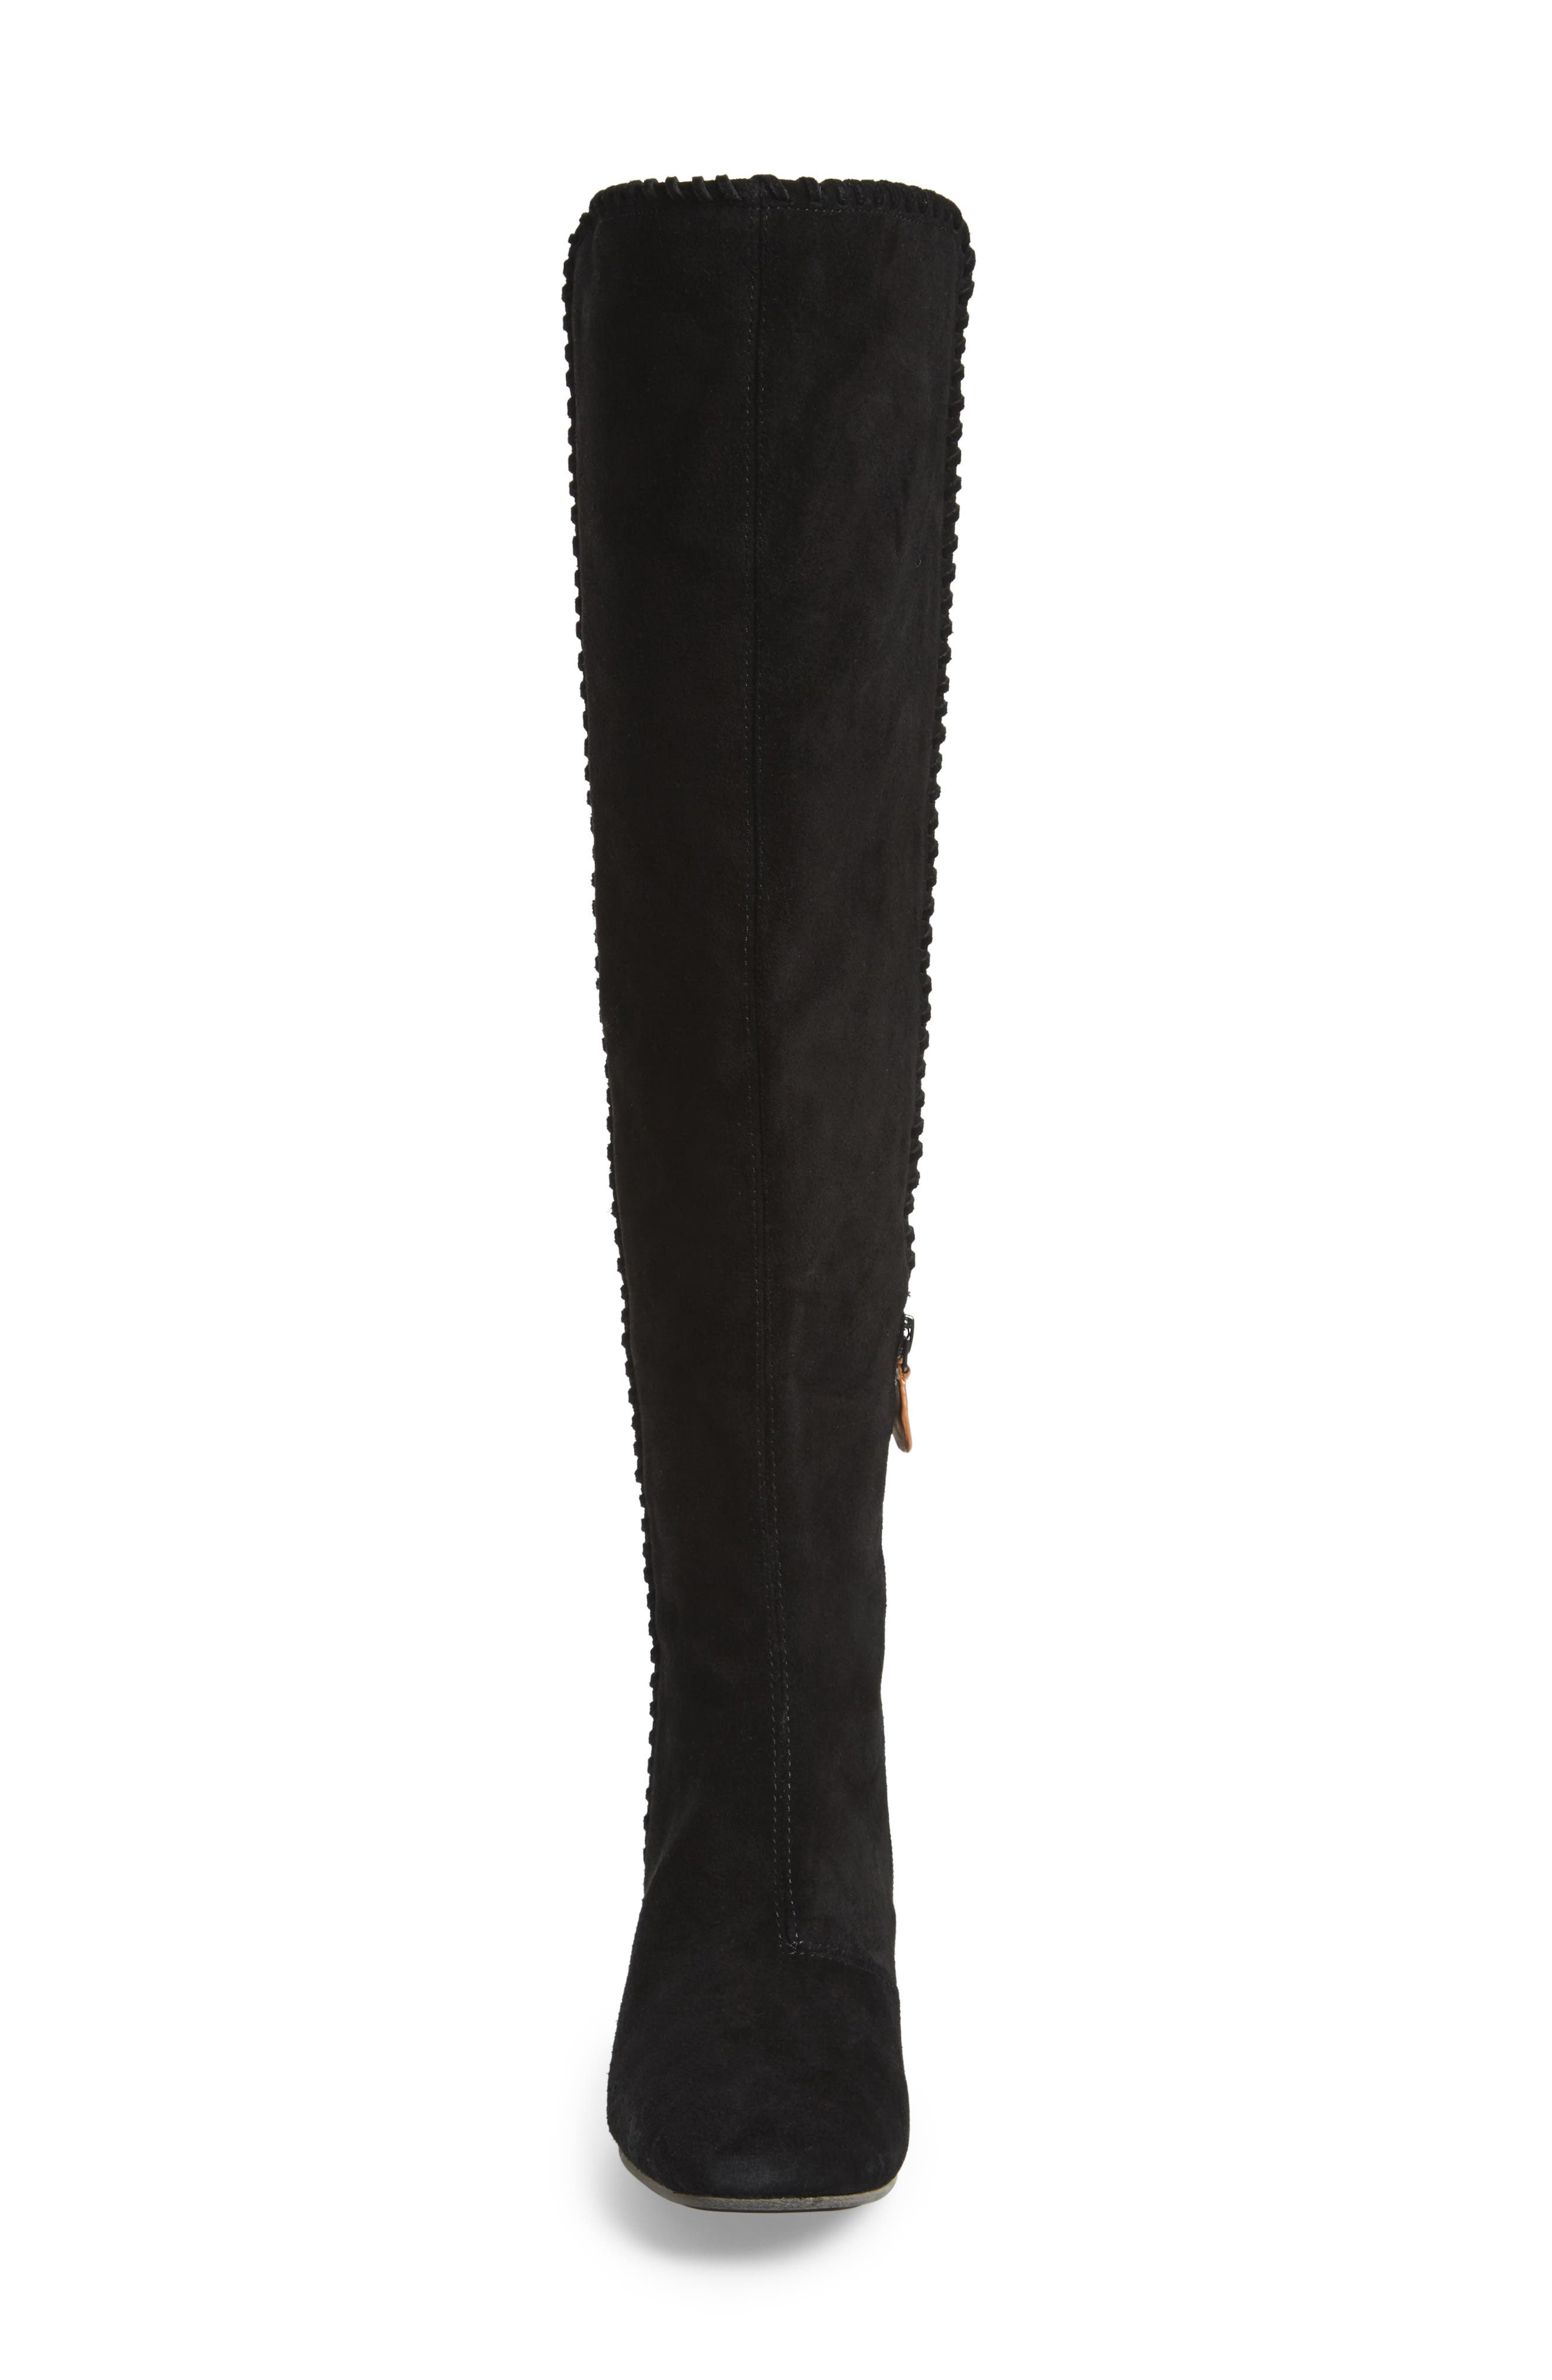 Emery Over the Knee Boot,                             Alternate thumbnail 4, color,                             001